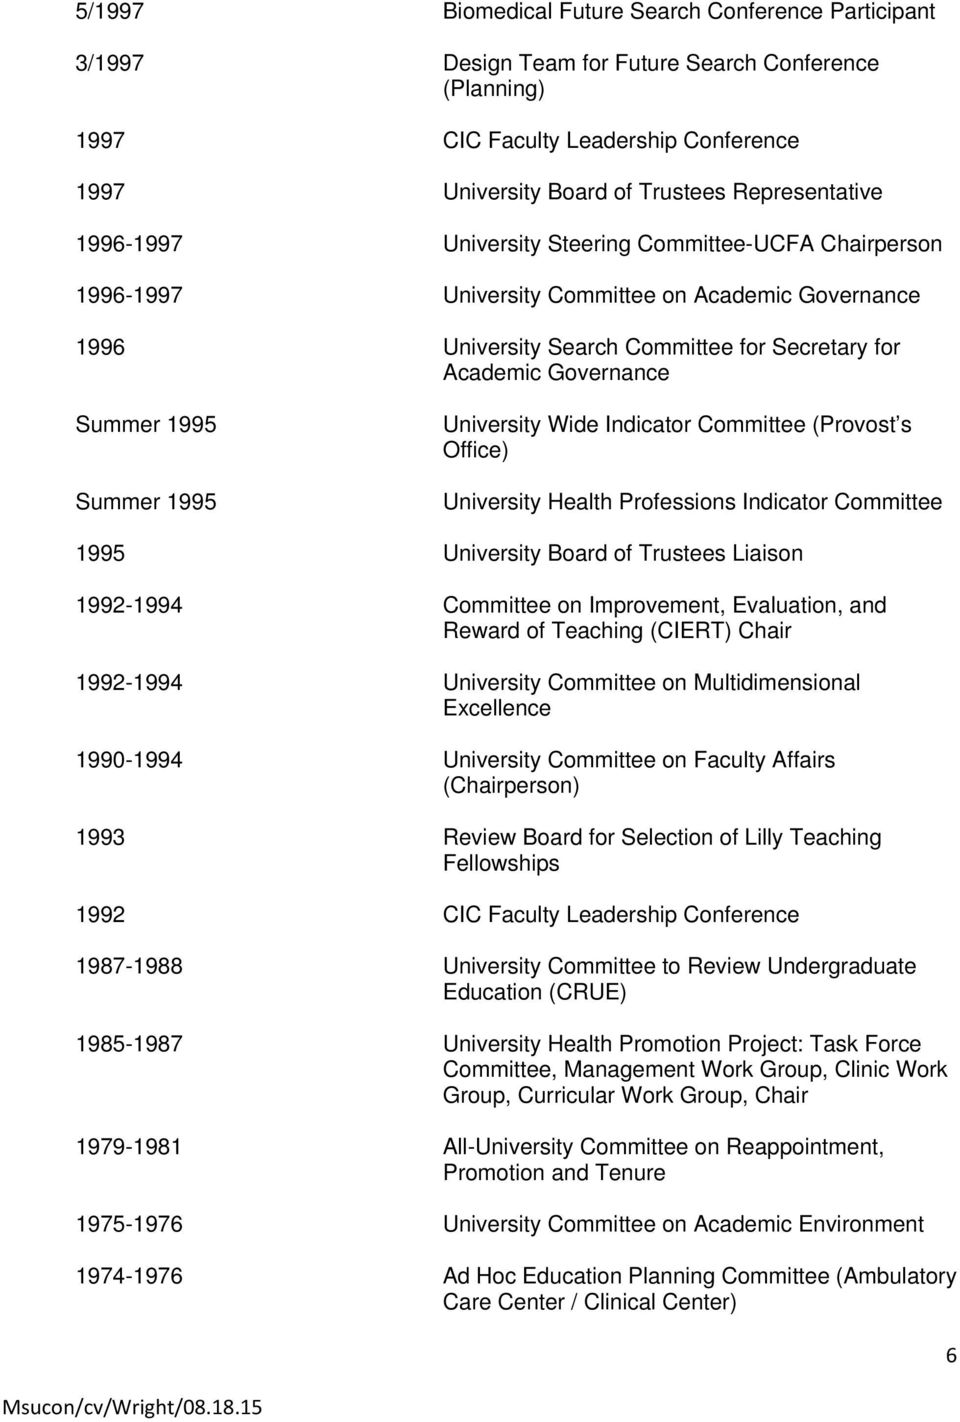 Summer 1995 Summer 1995 University Wide Indicator Committee (Provost s Office) University Health Professions Indicator Committee 1995 University Board of Trustees Liaison 1992-1994 Committee on